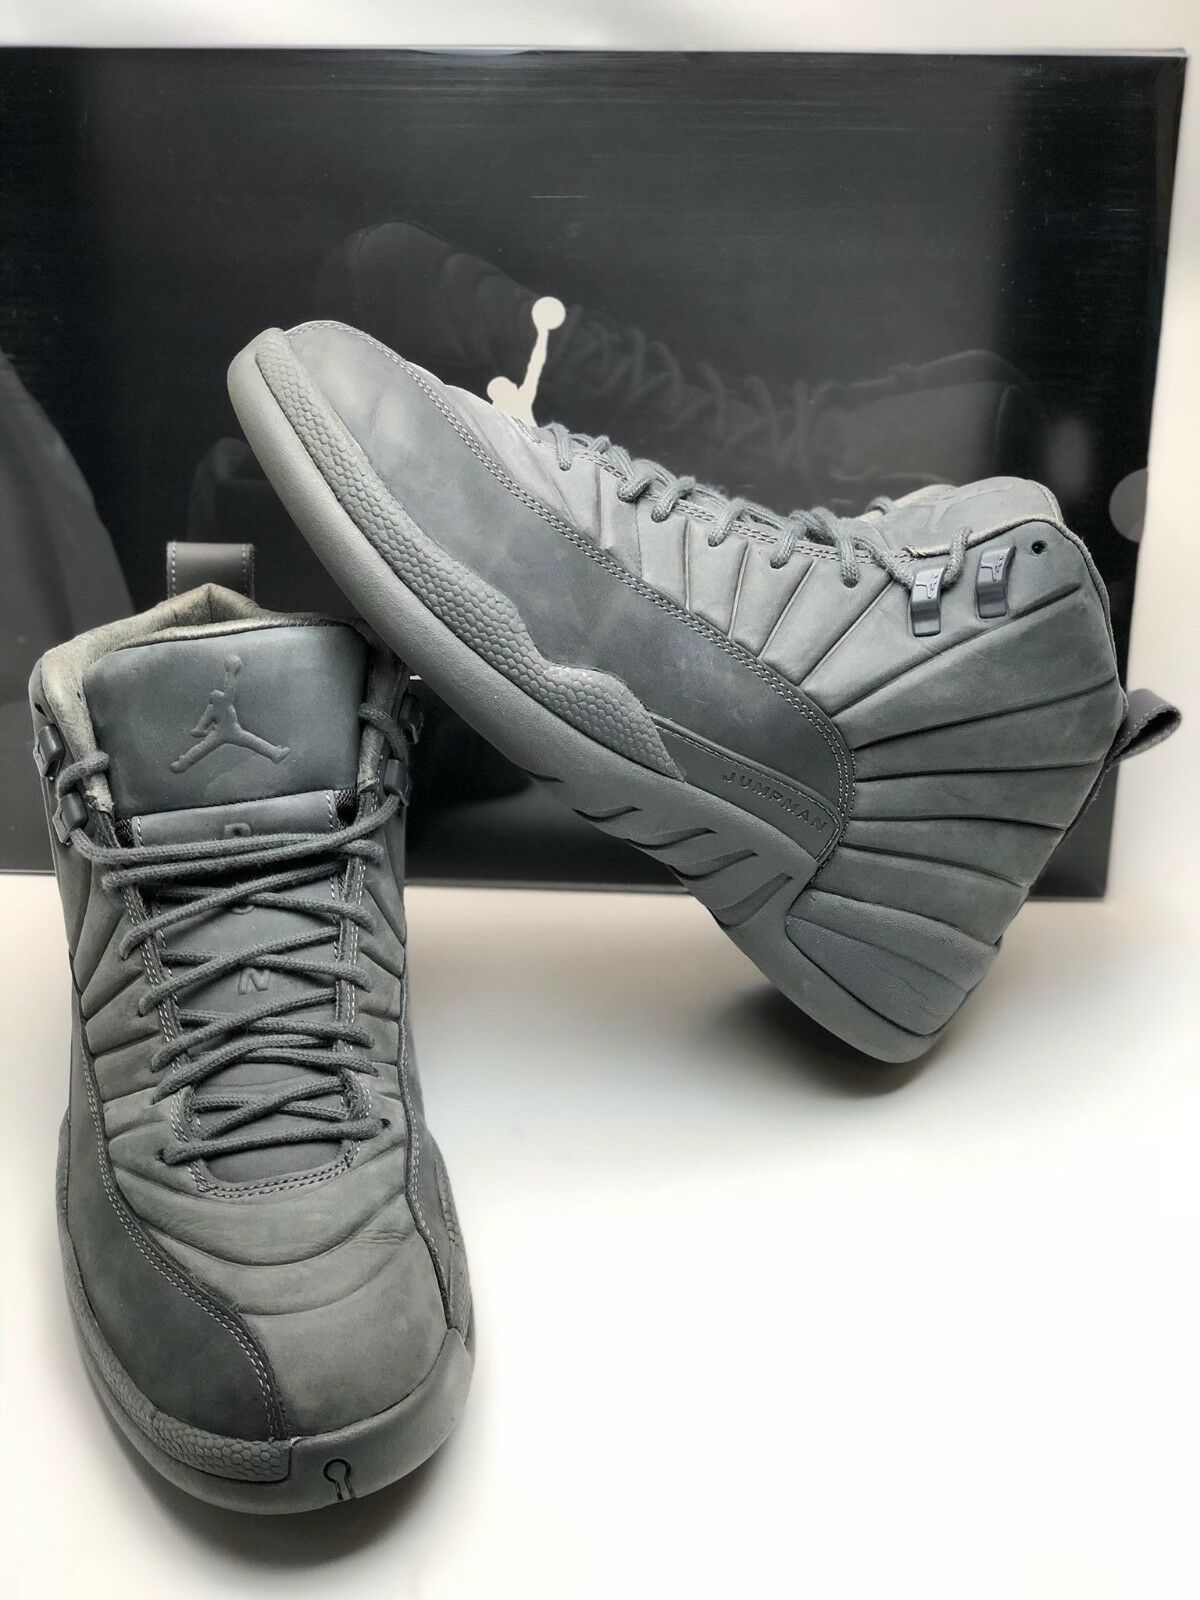 Air Jordan 12 XII Retro Public School New York PSNY 130690-003 Grey Black Sz10.5